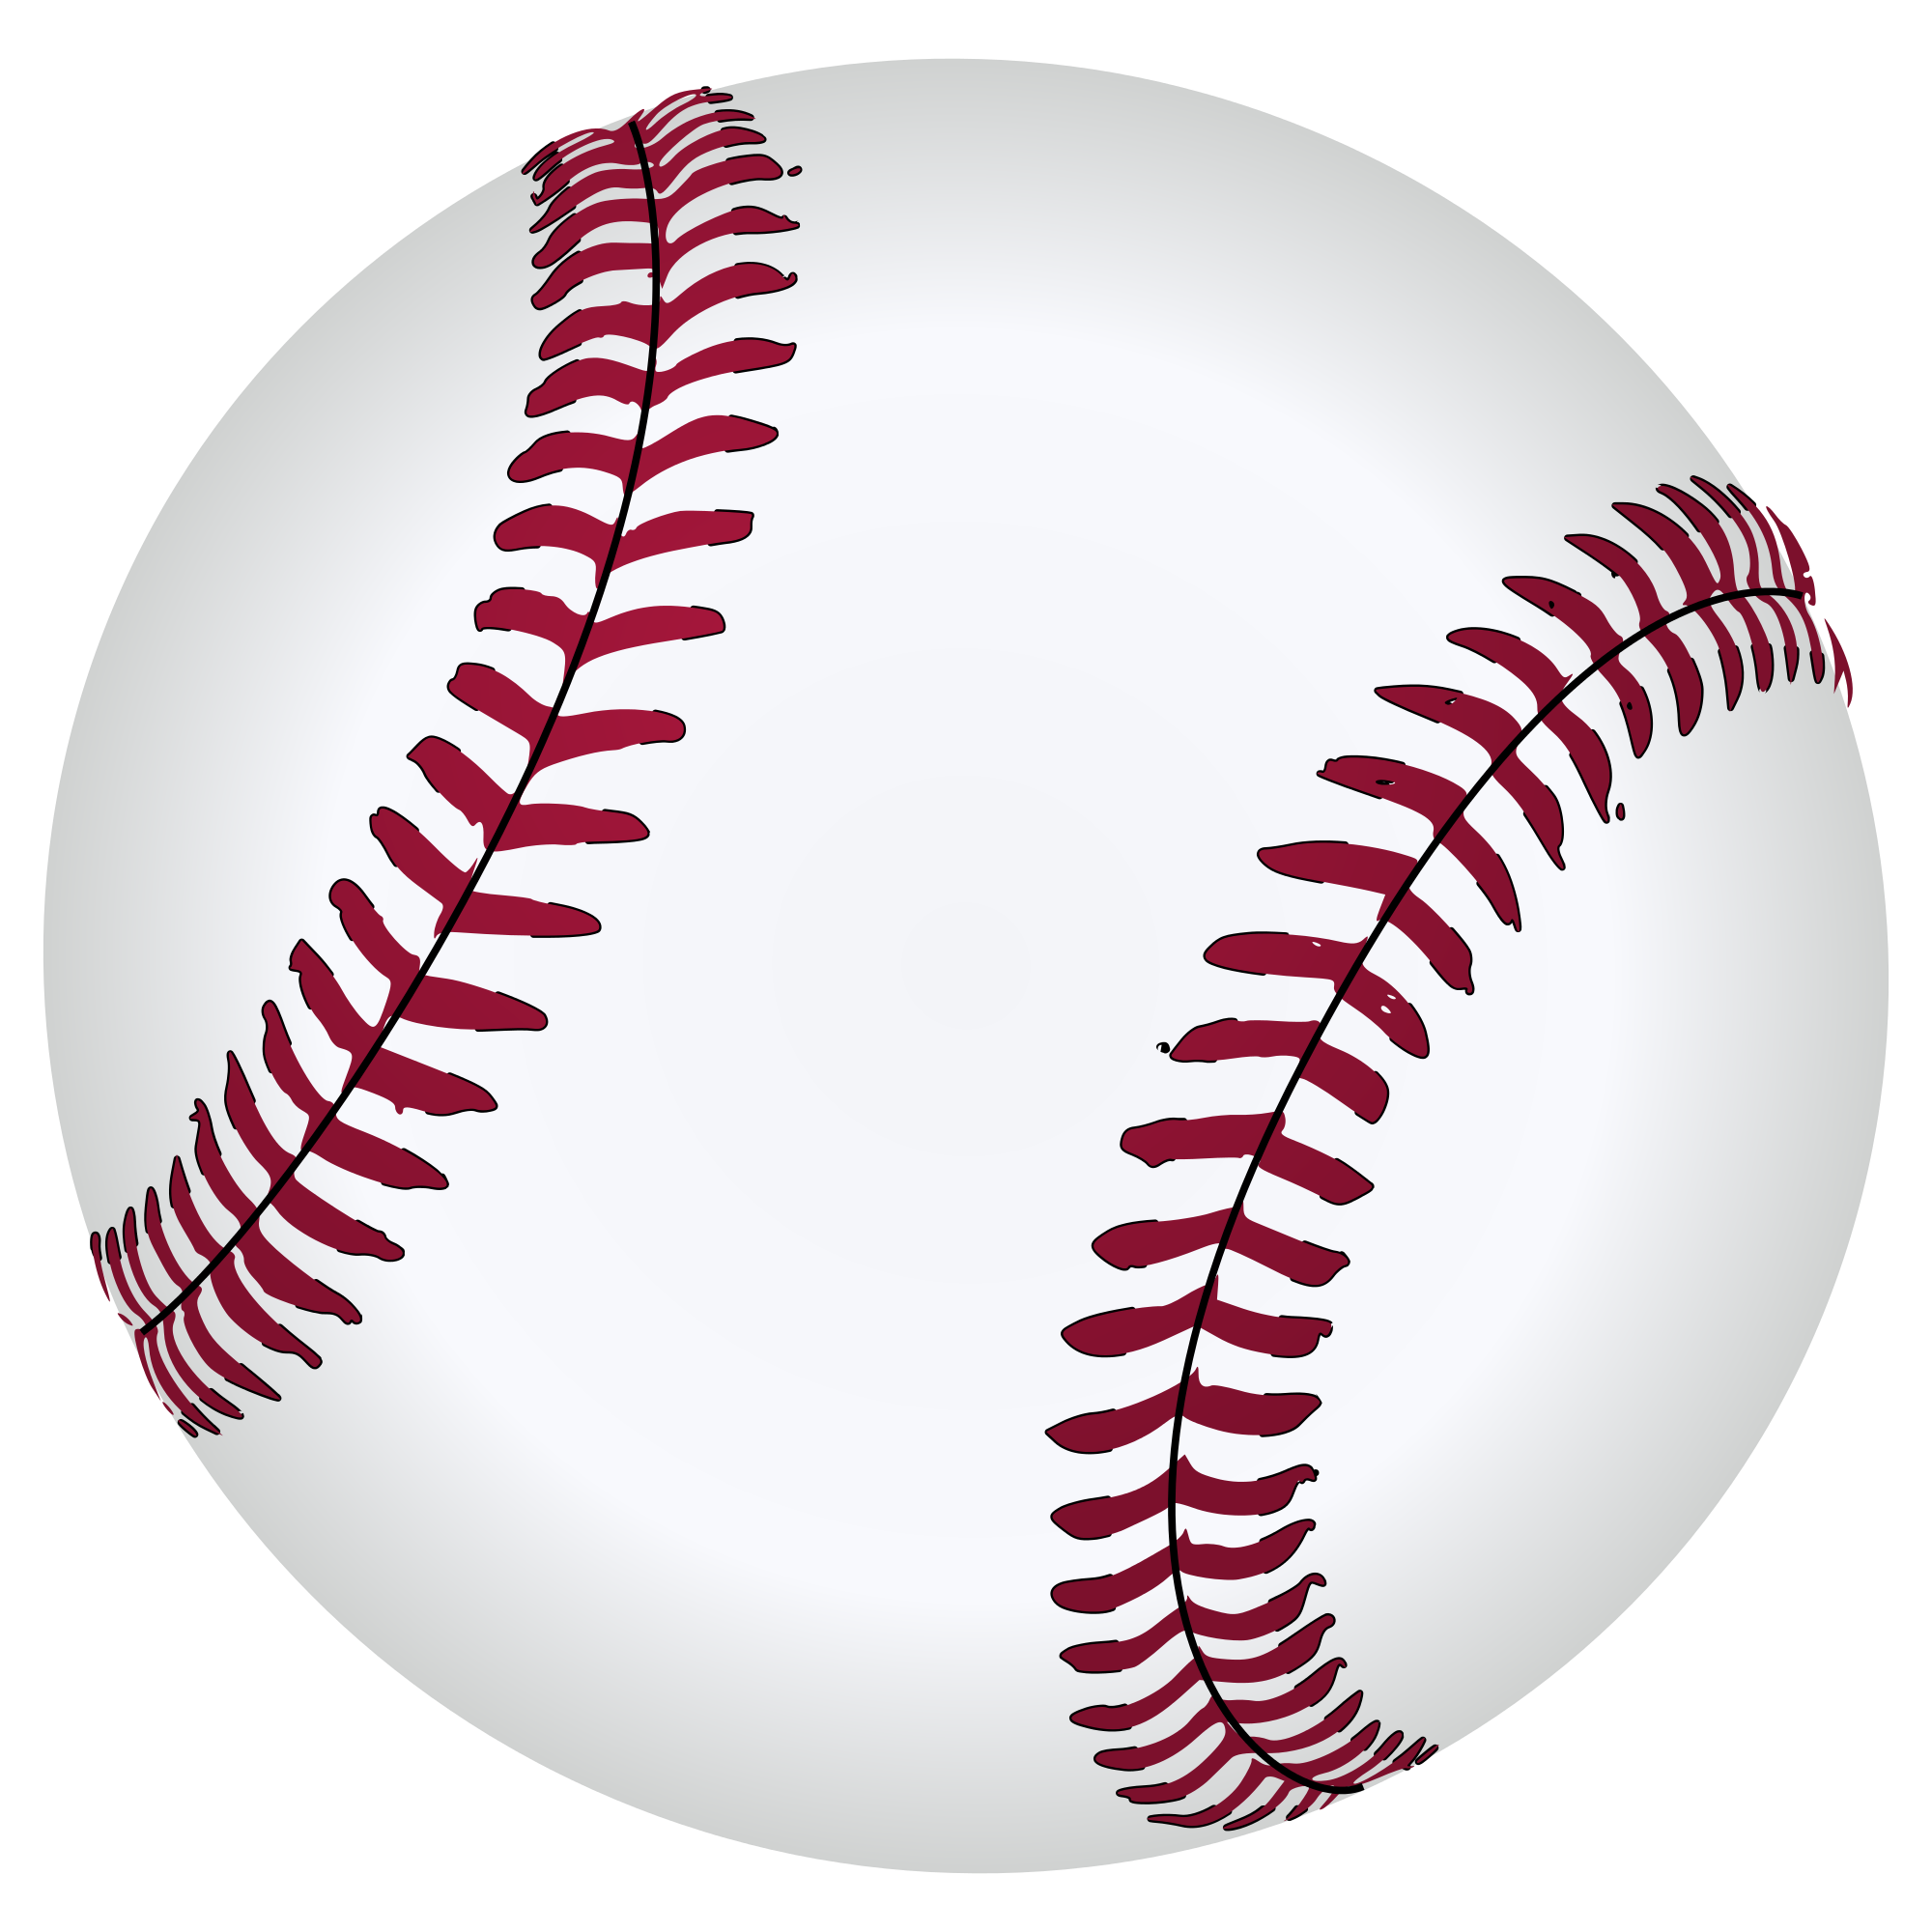 Baseball seams clipart picture free download Baseball Ball Drawing at GetDrawings.com | Free for personal use ... picture free download